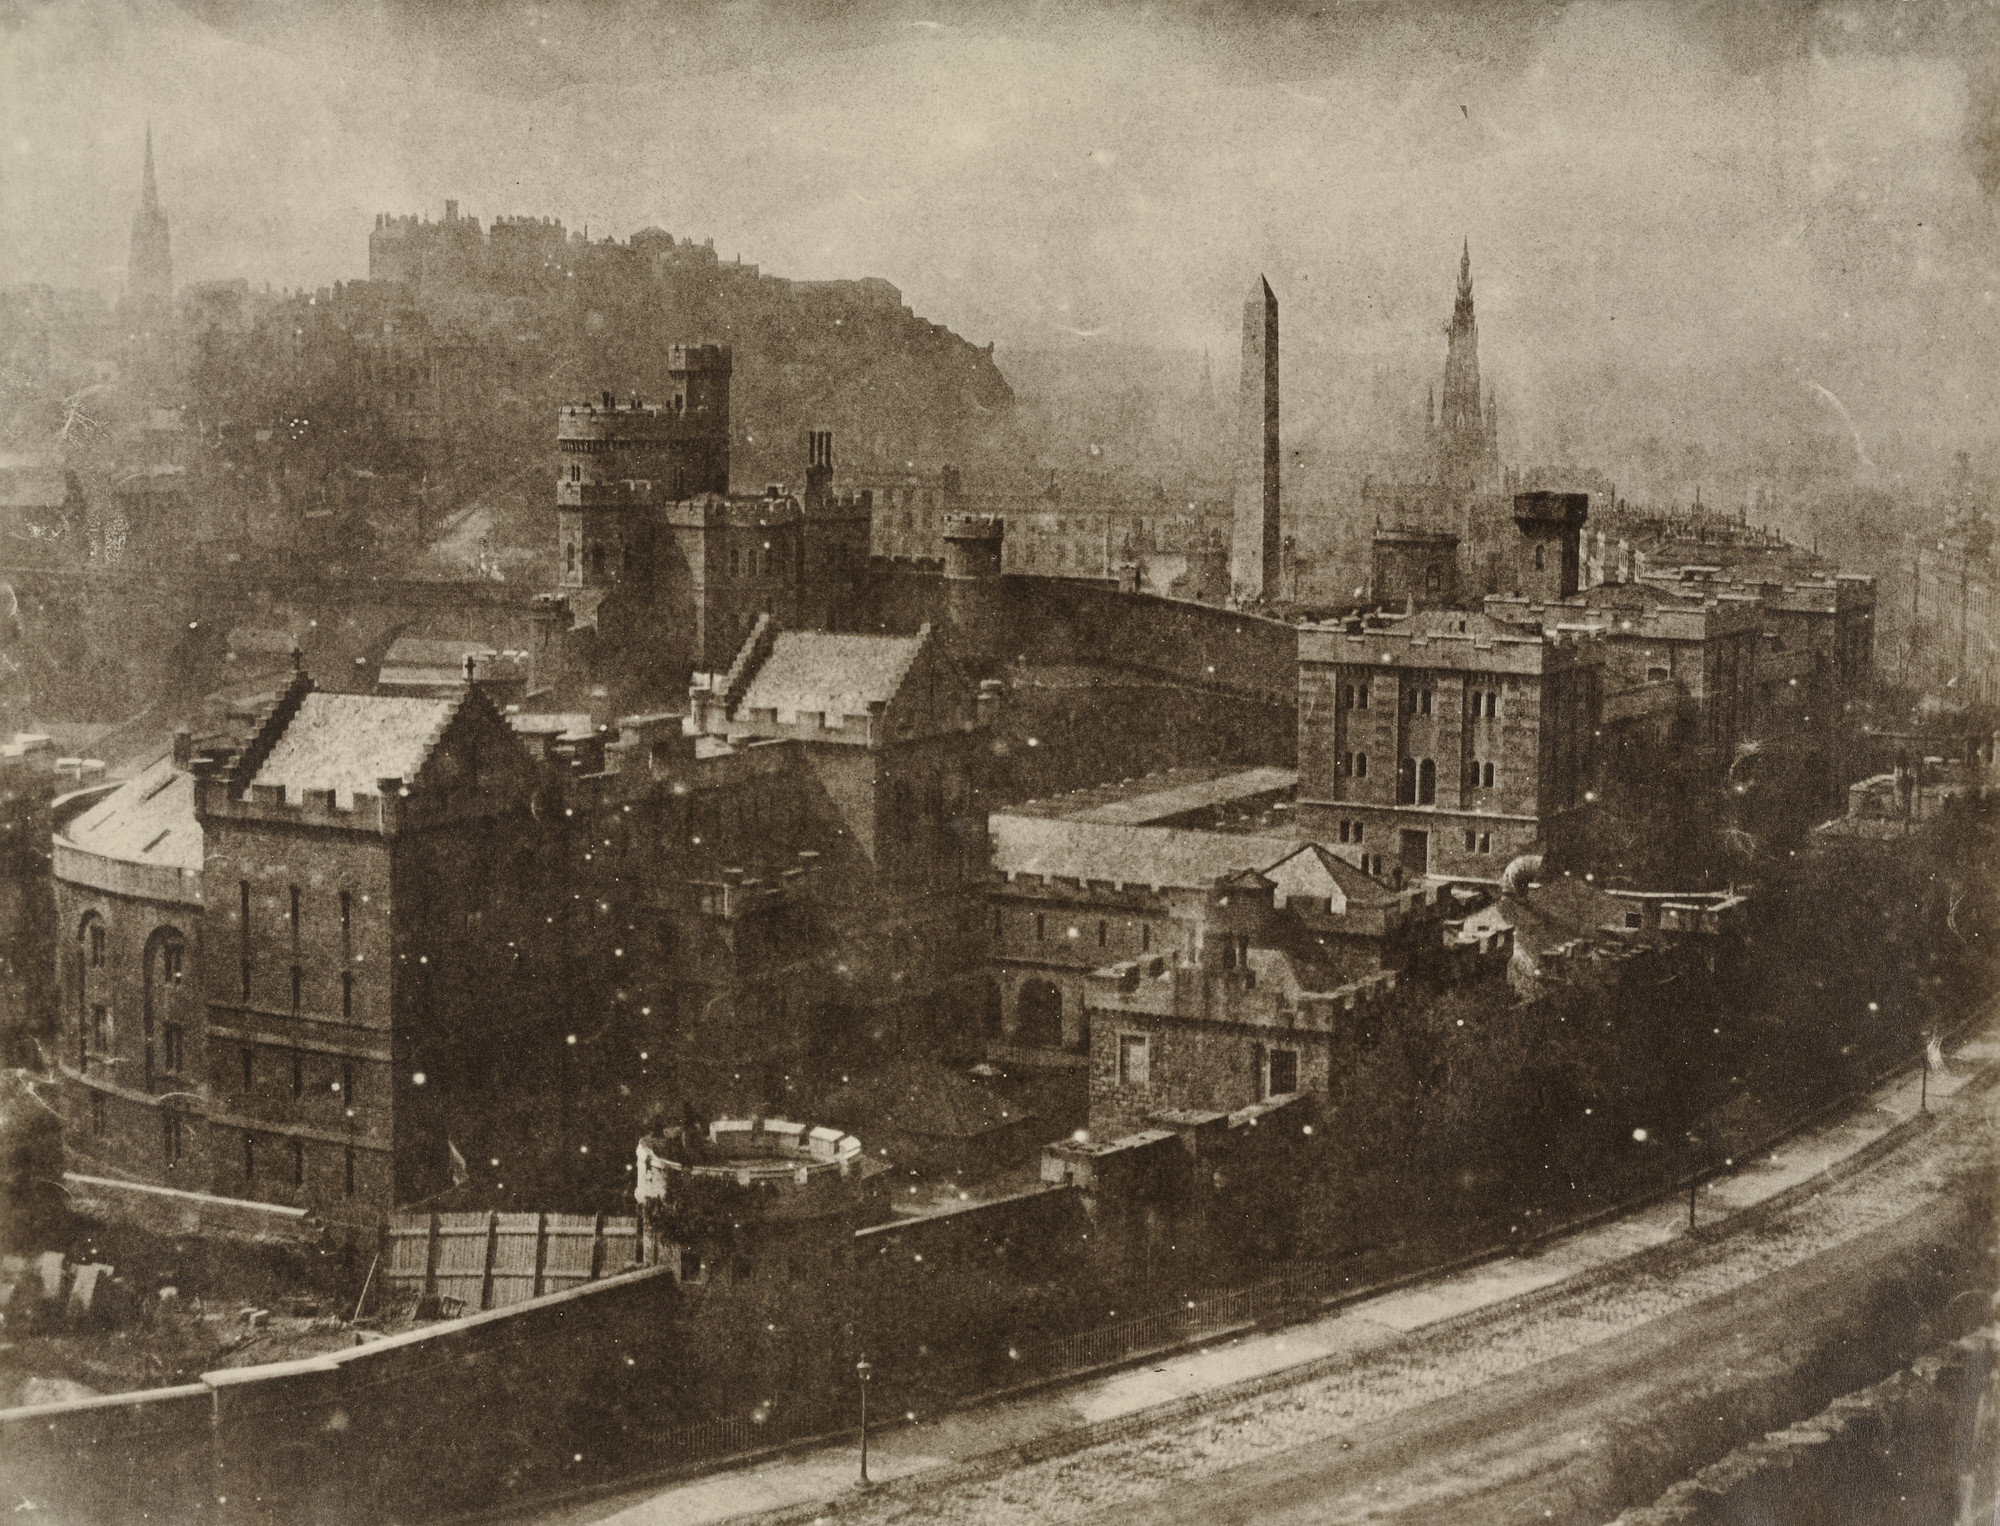 David Octavius Hill, Robert Adamson. Edinburgh from Calton Hill. 1843